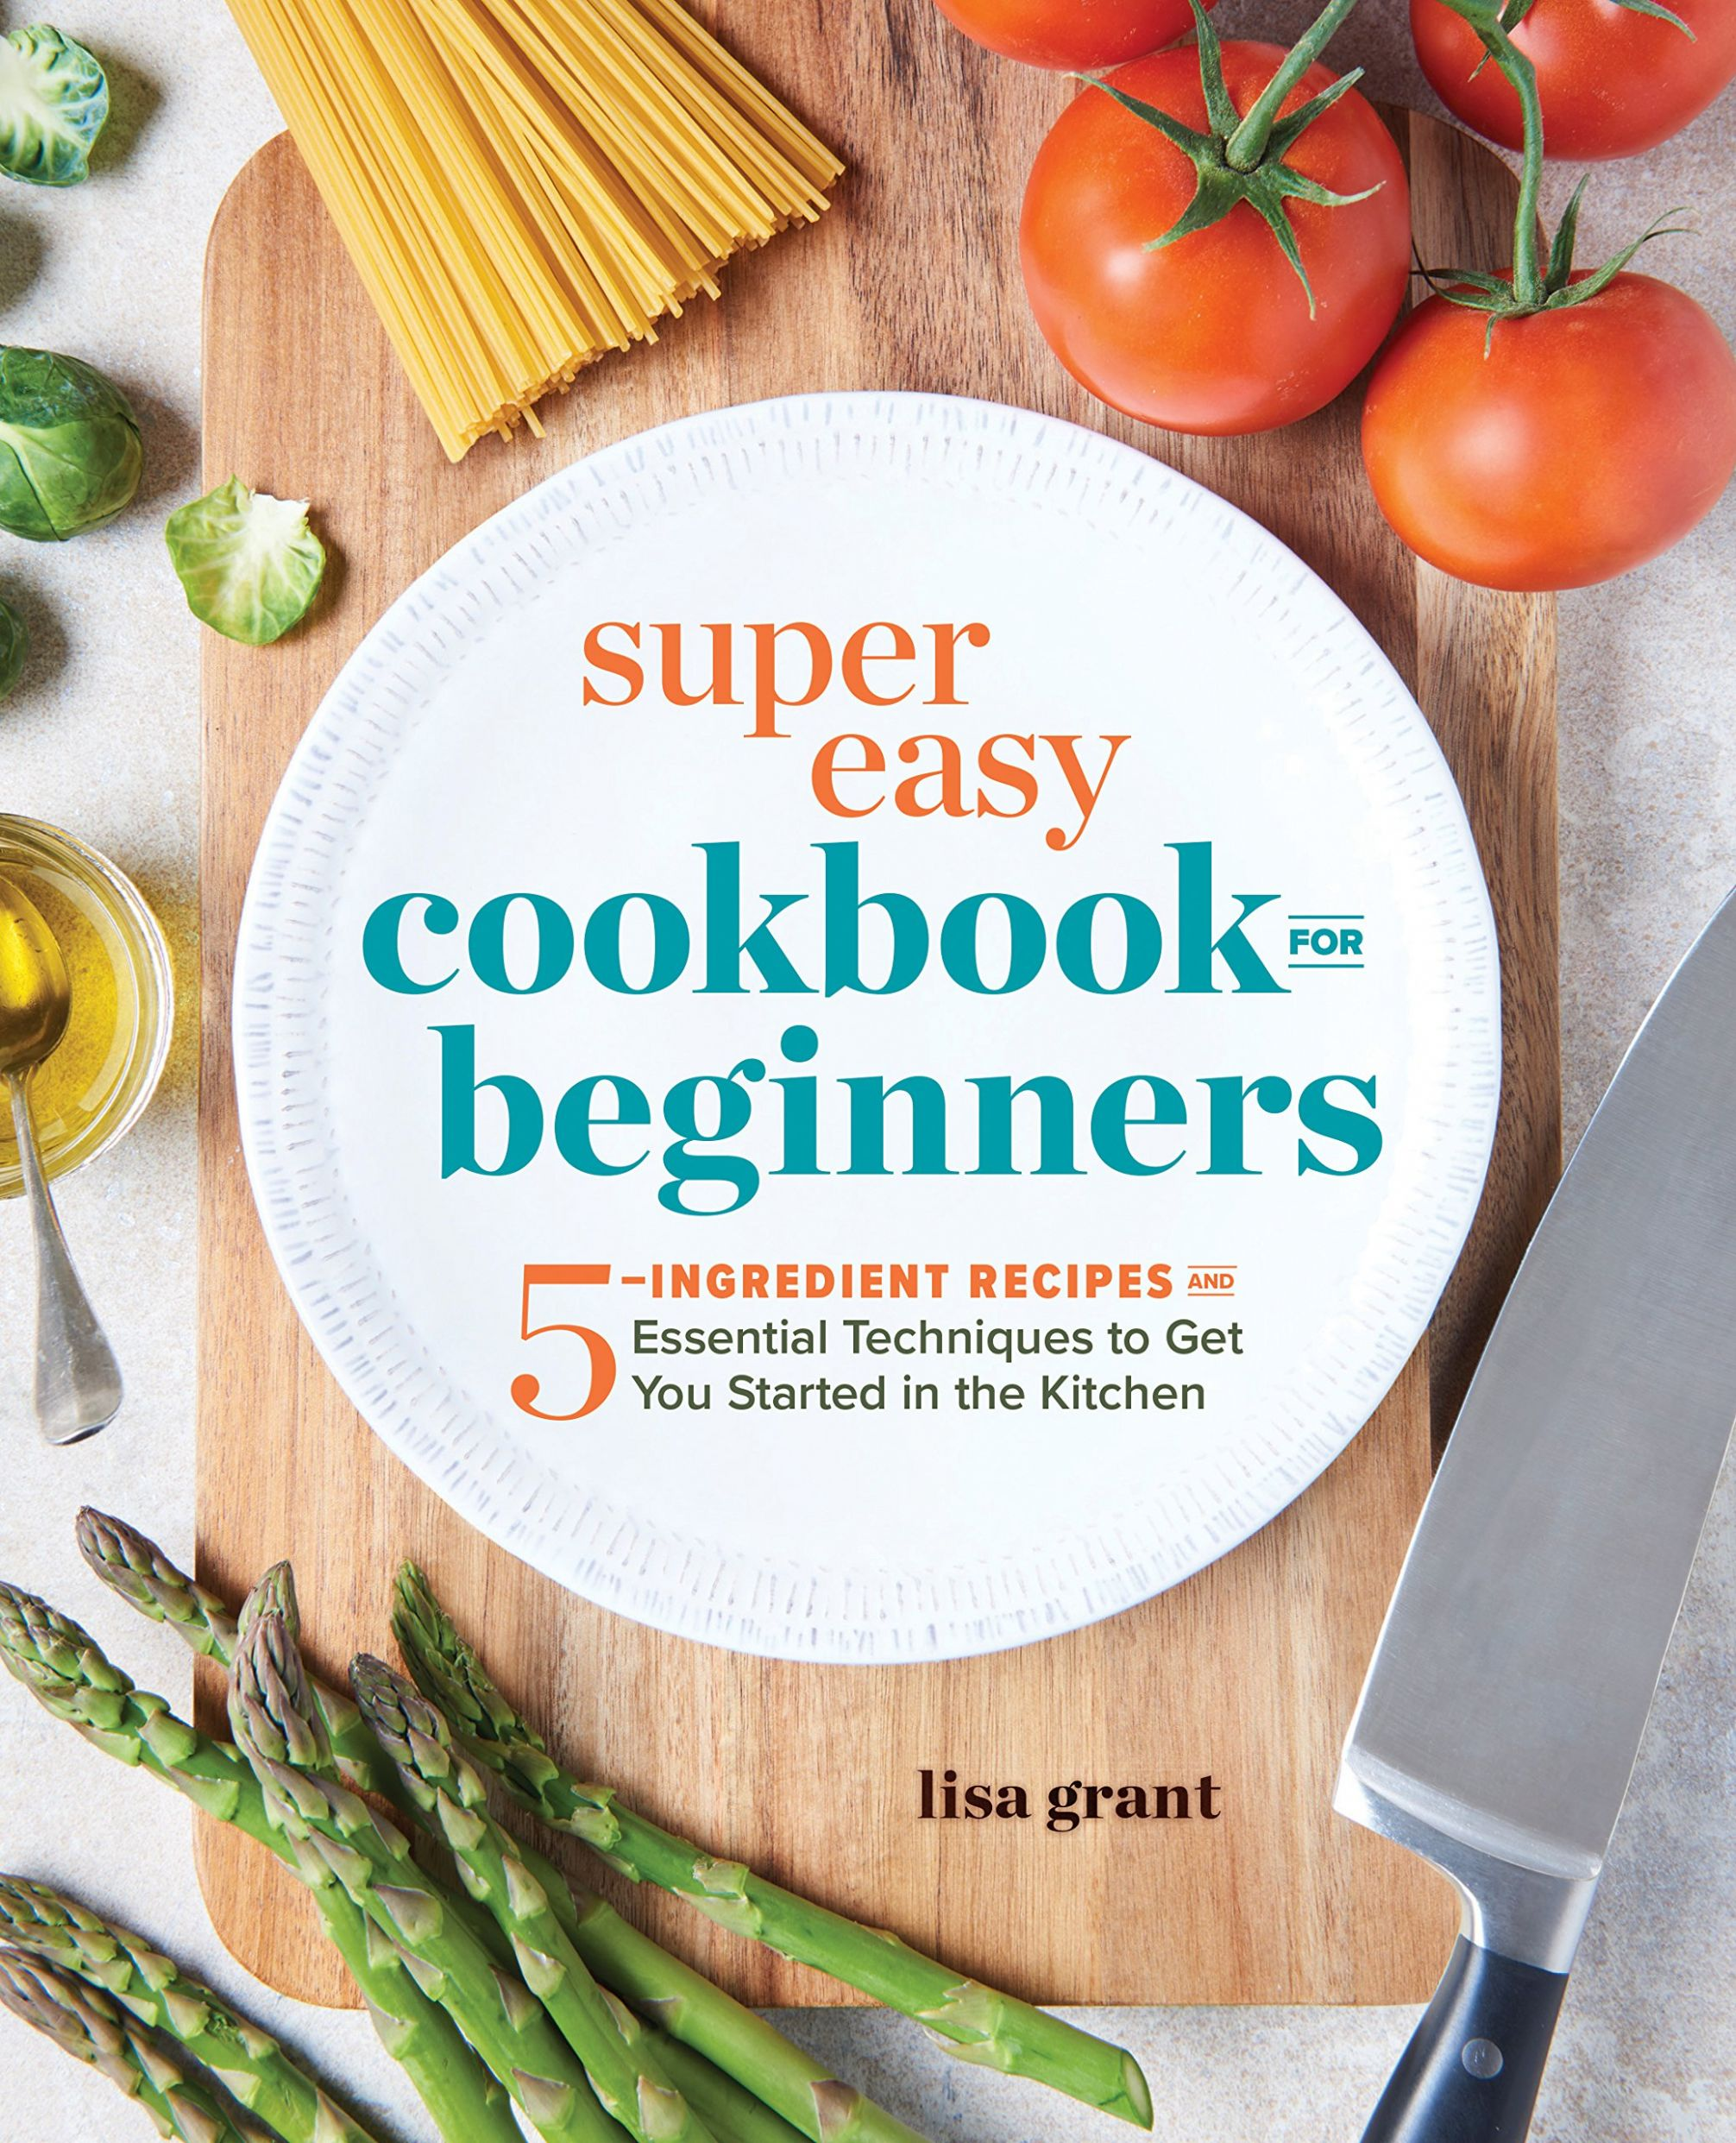 Super Easy Cookbook for Beginners: 12-Ingredient Recipes and ..